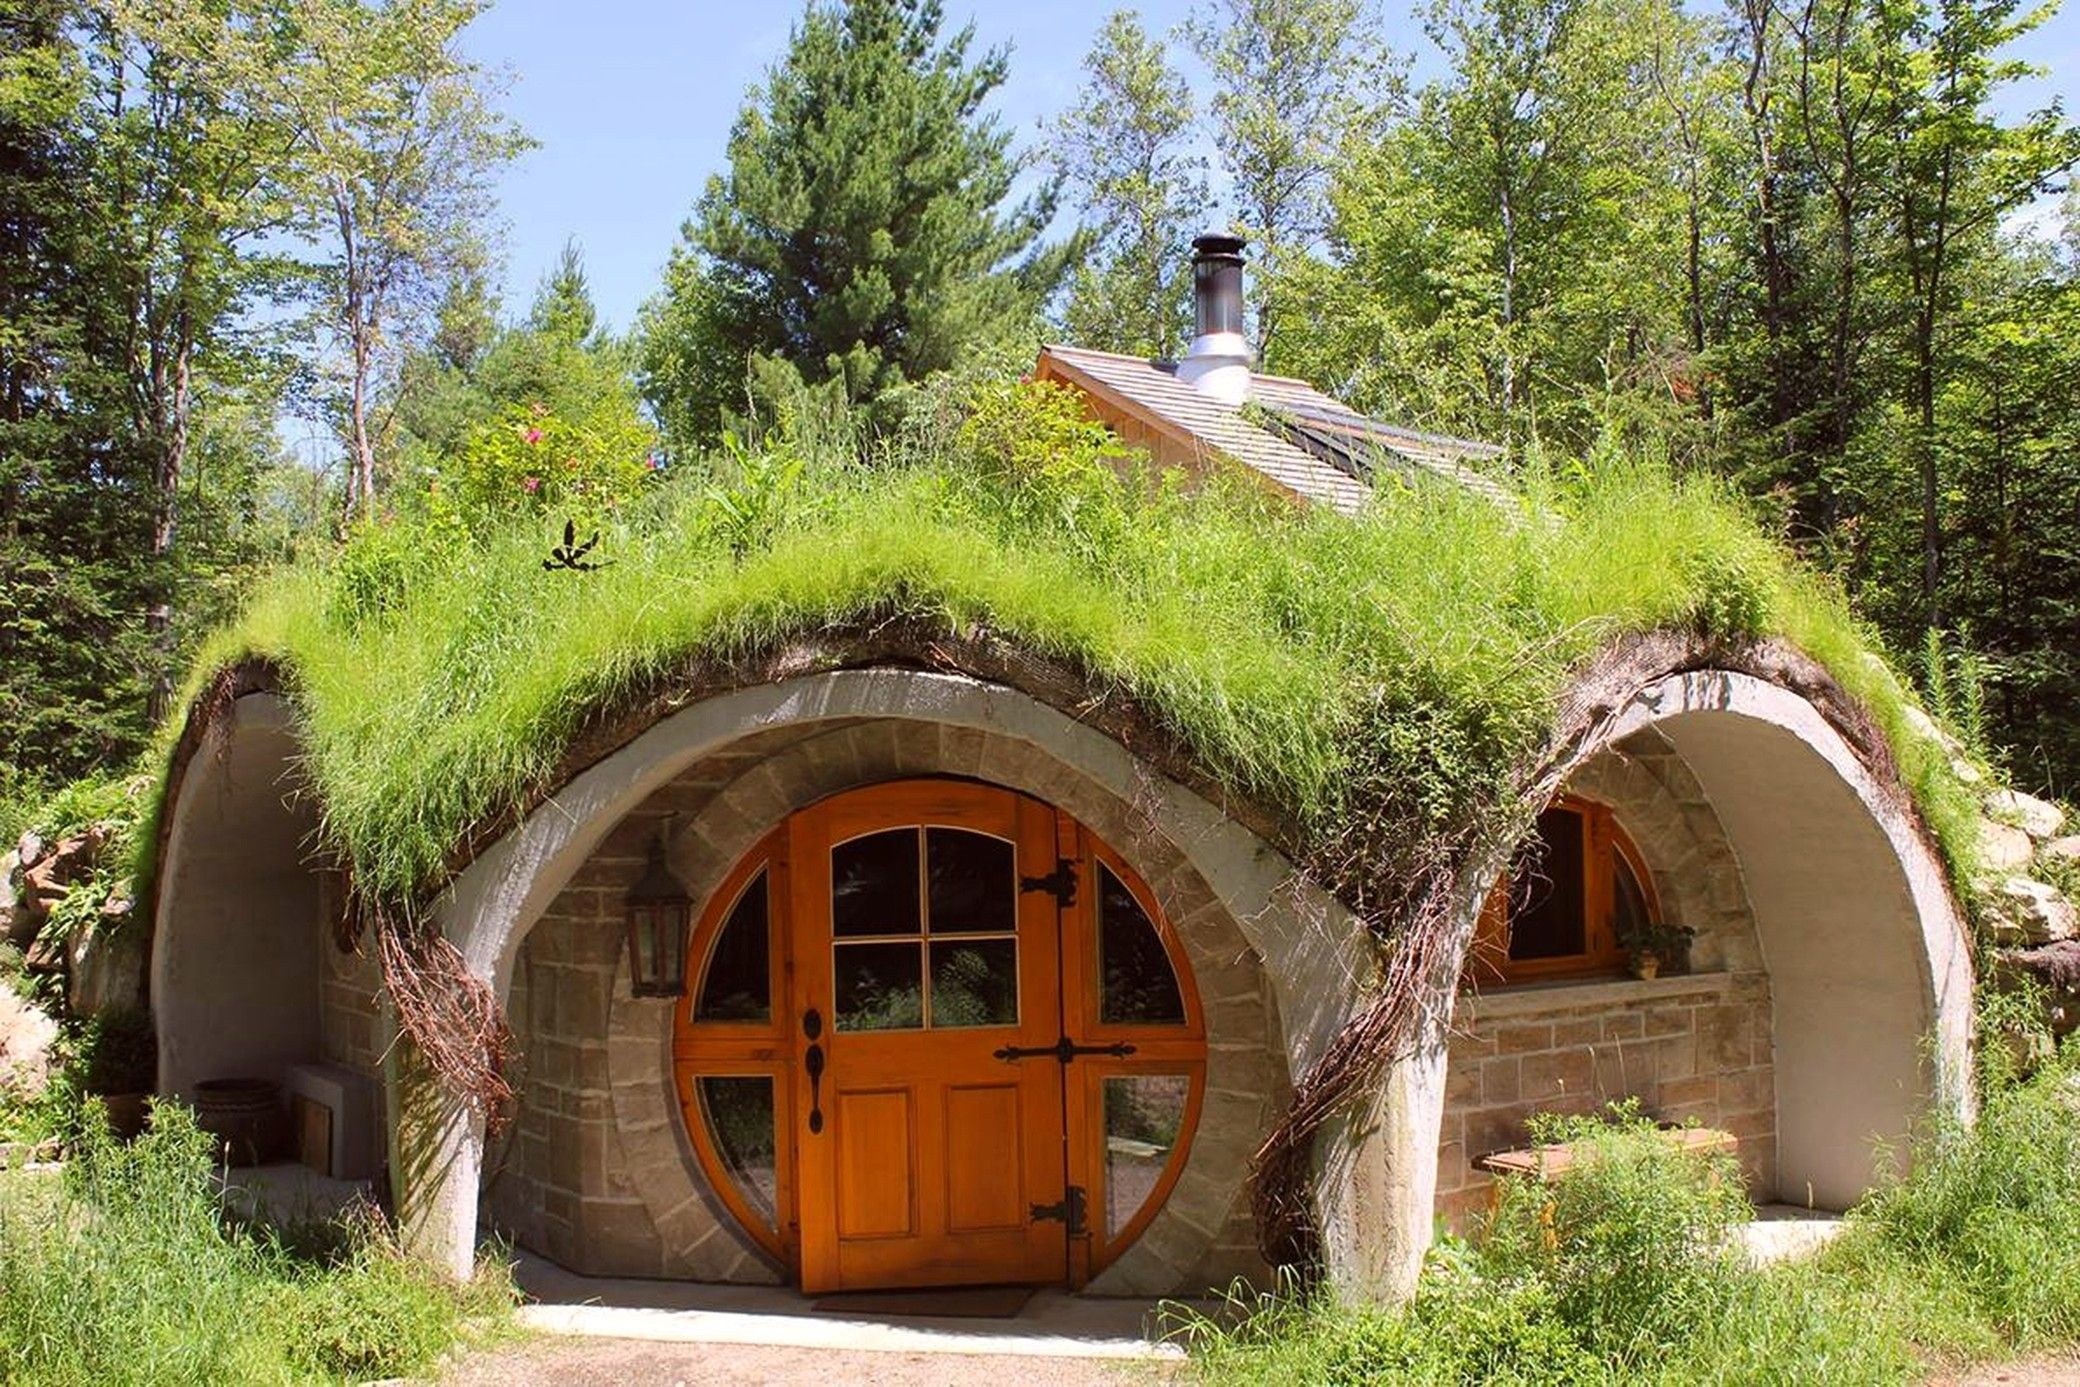 This Is Where You Can Visit A Genuine Hobbit House Arch2o Com In 2020 Hobbit House Earth Sheltered Homes Earth Homes